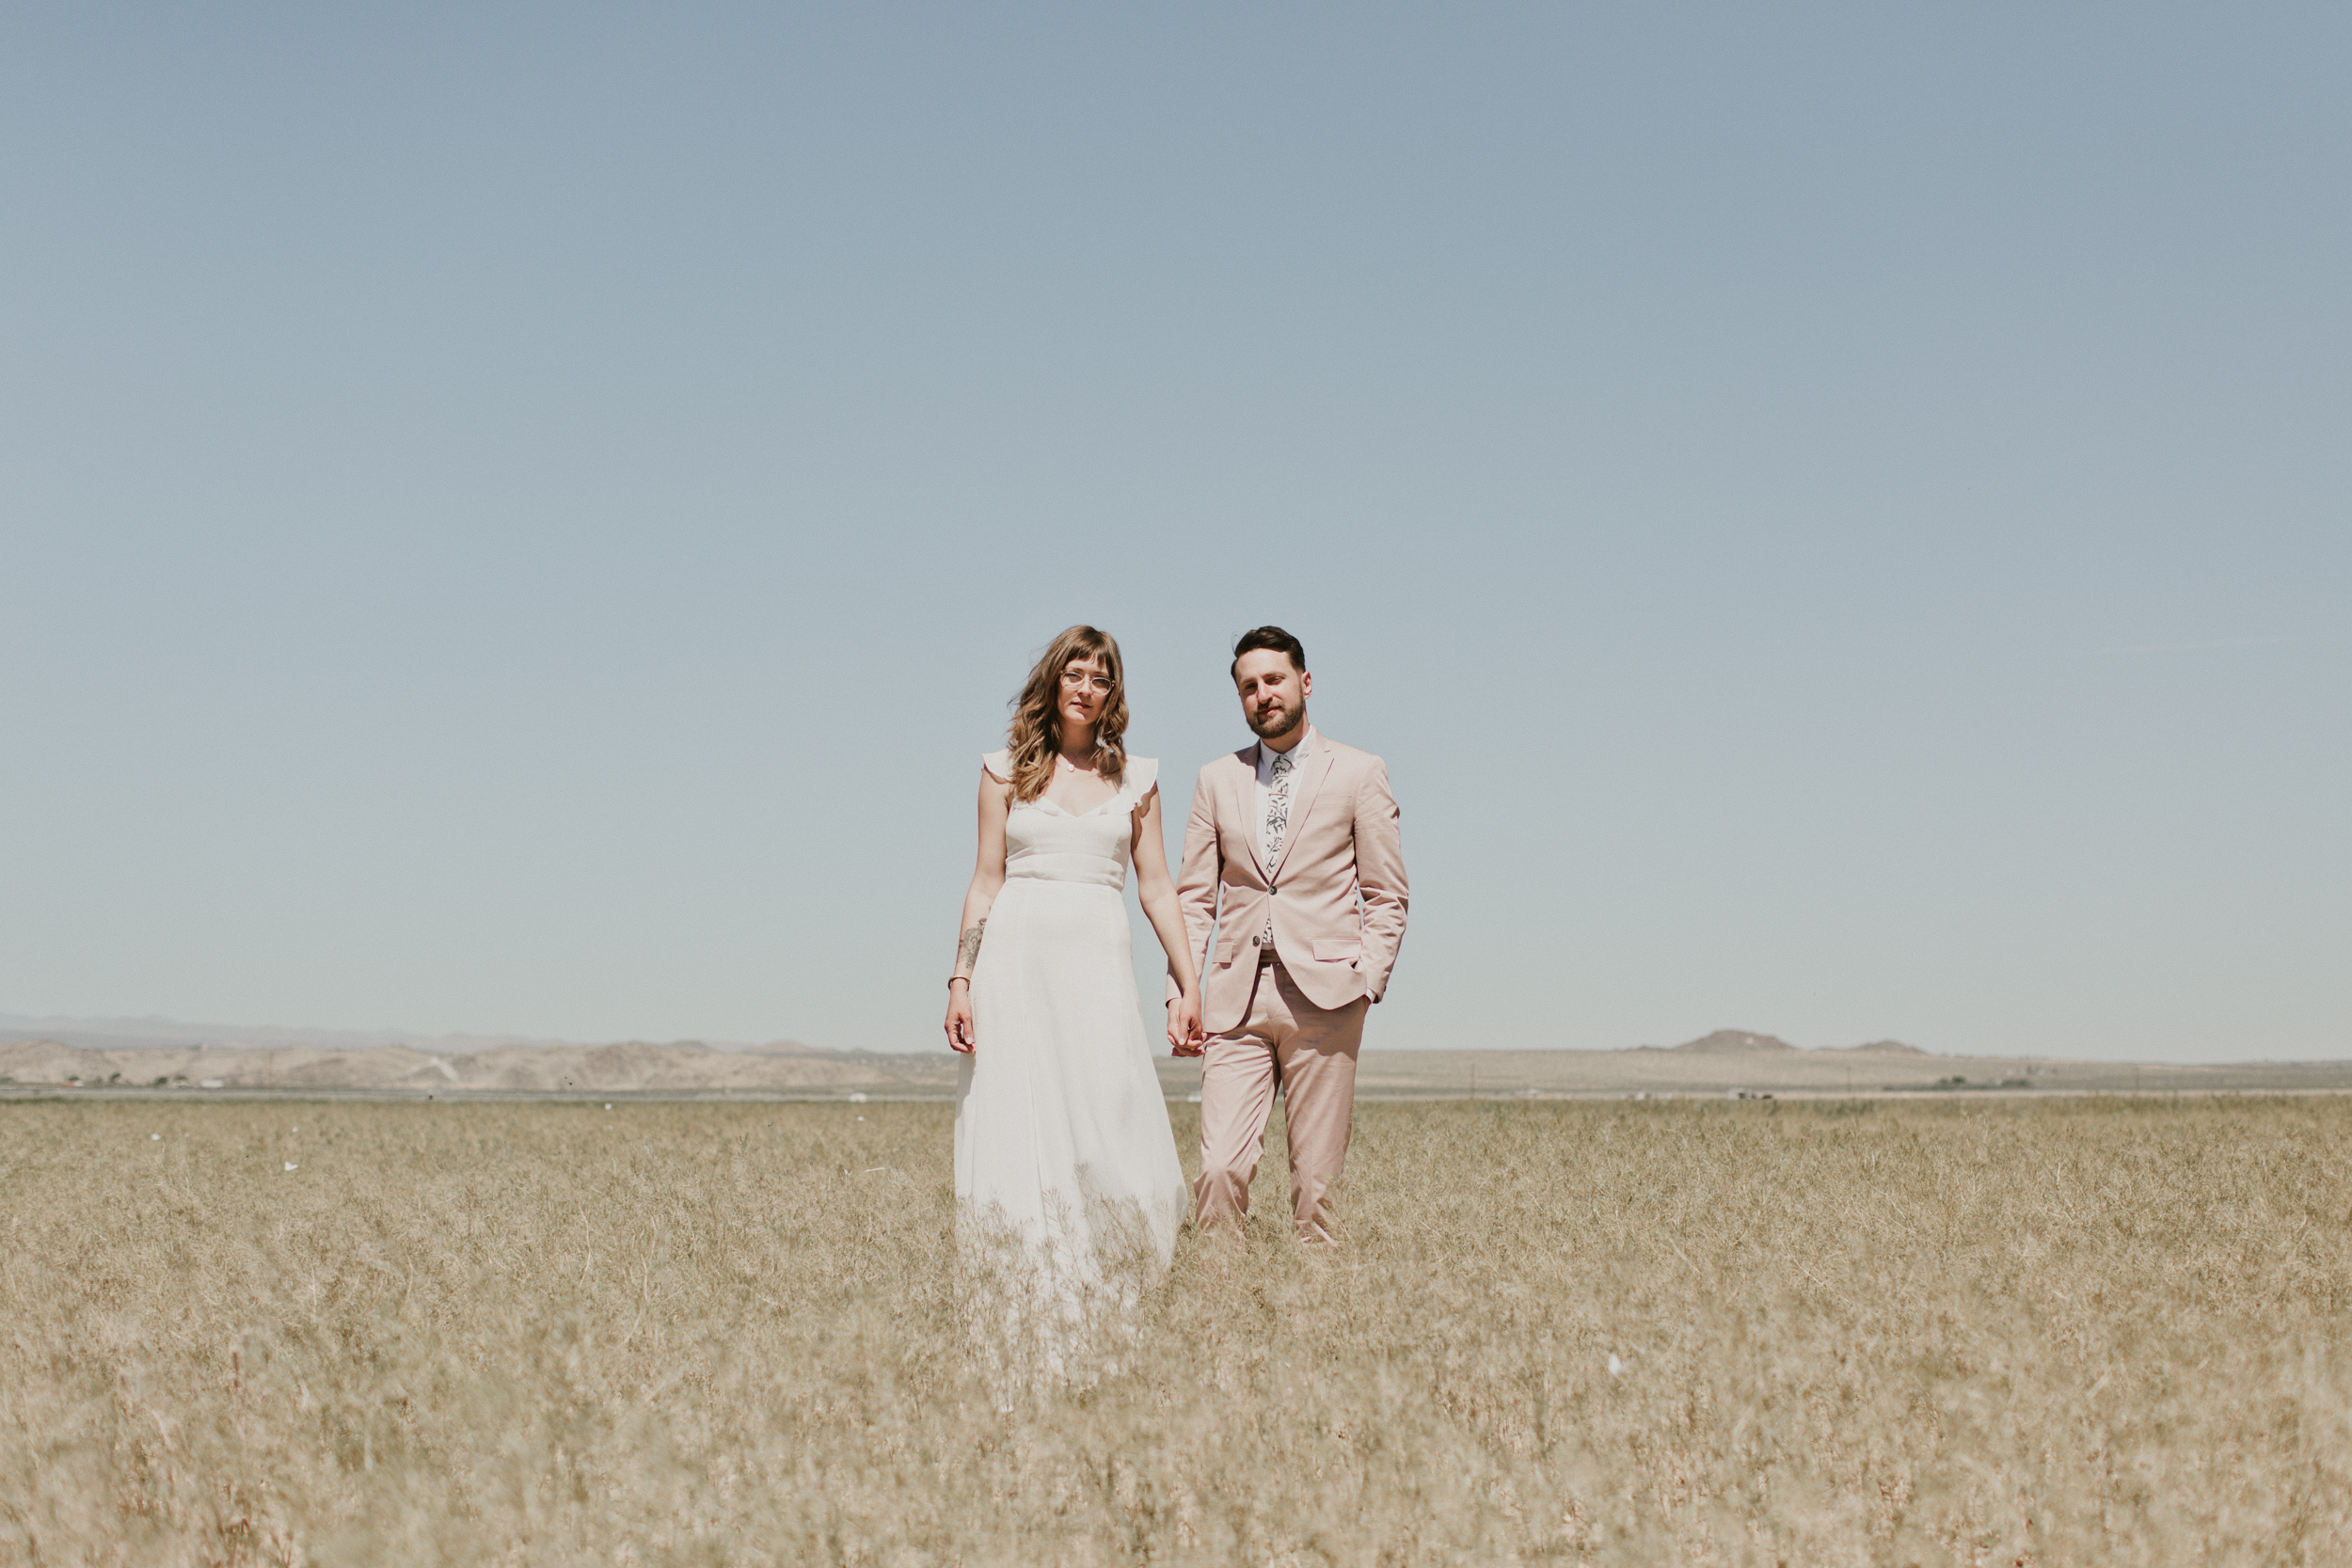 Maine-Elopement-Photographer-84.jpg